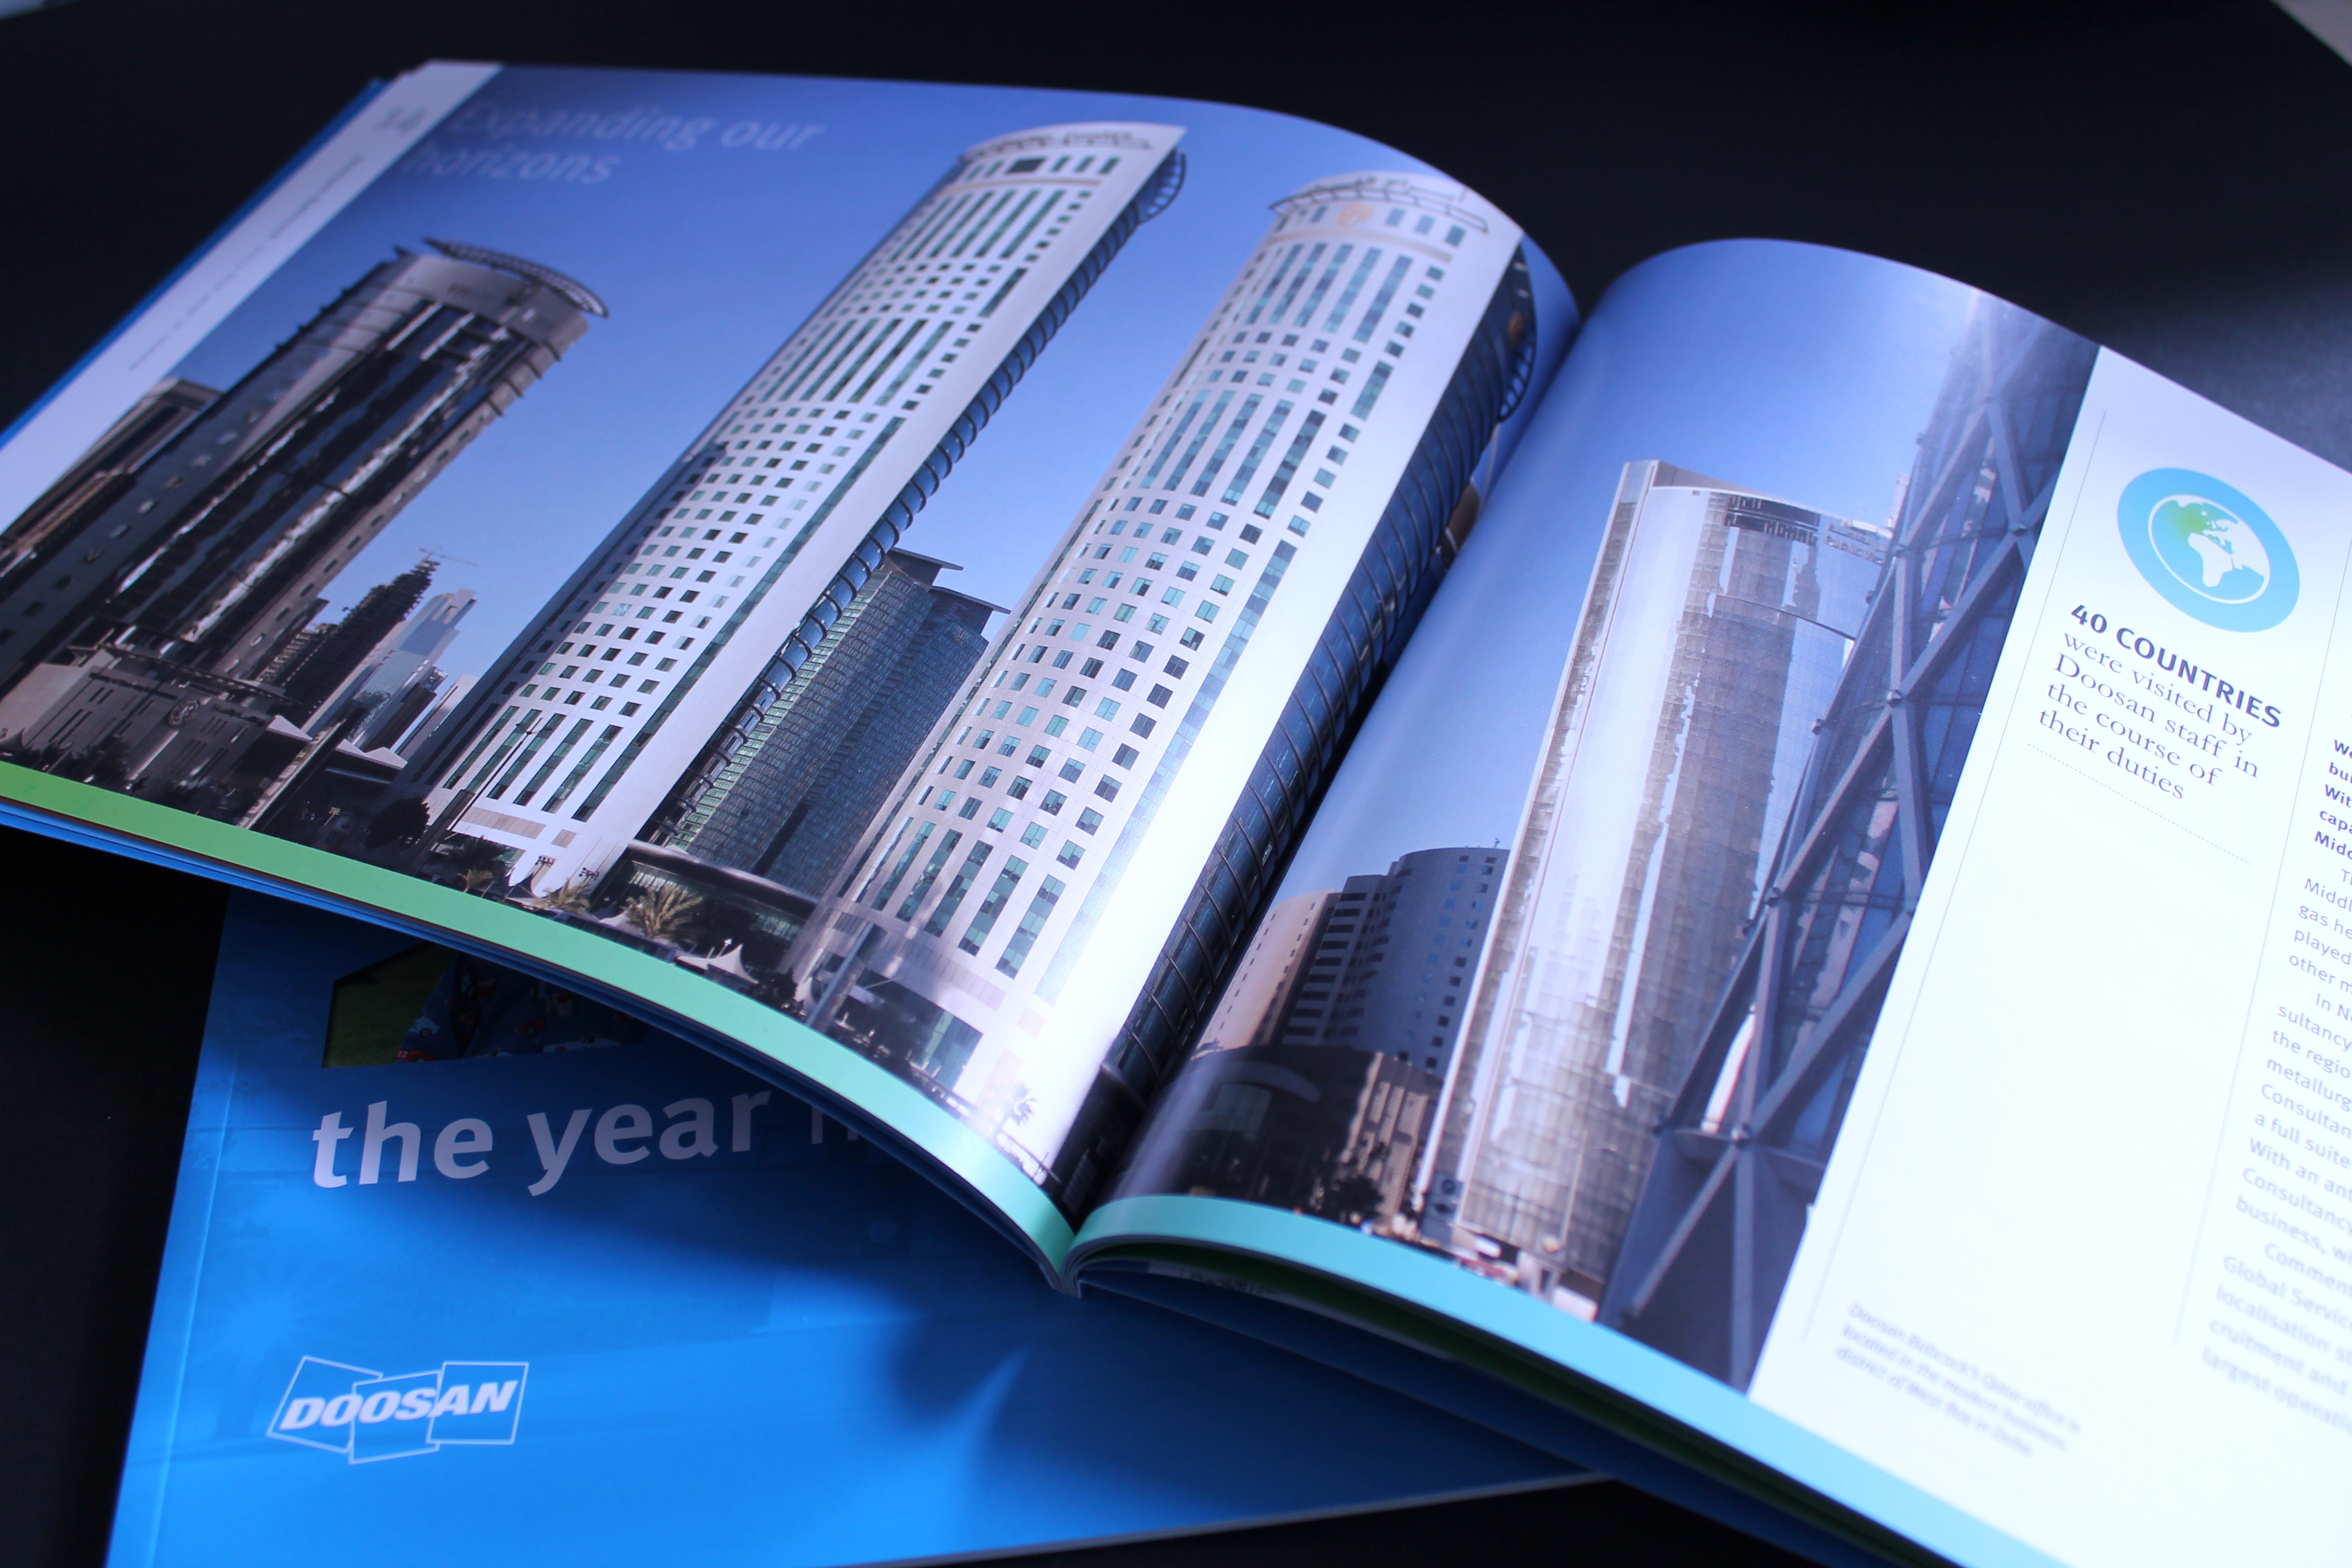 Doosan Yearbook 2014 04